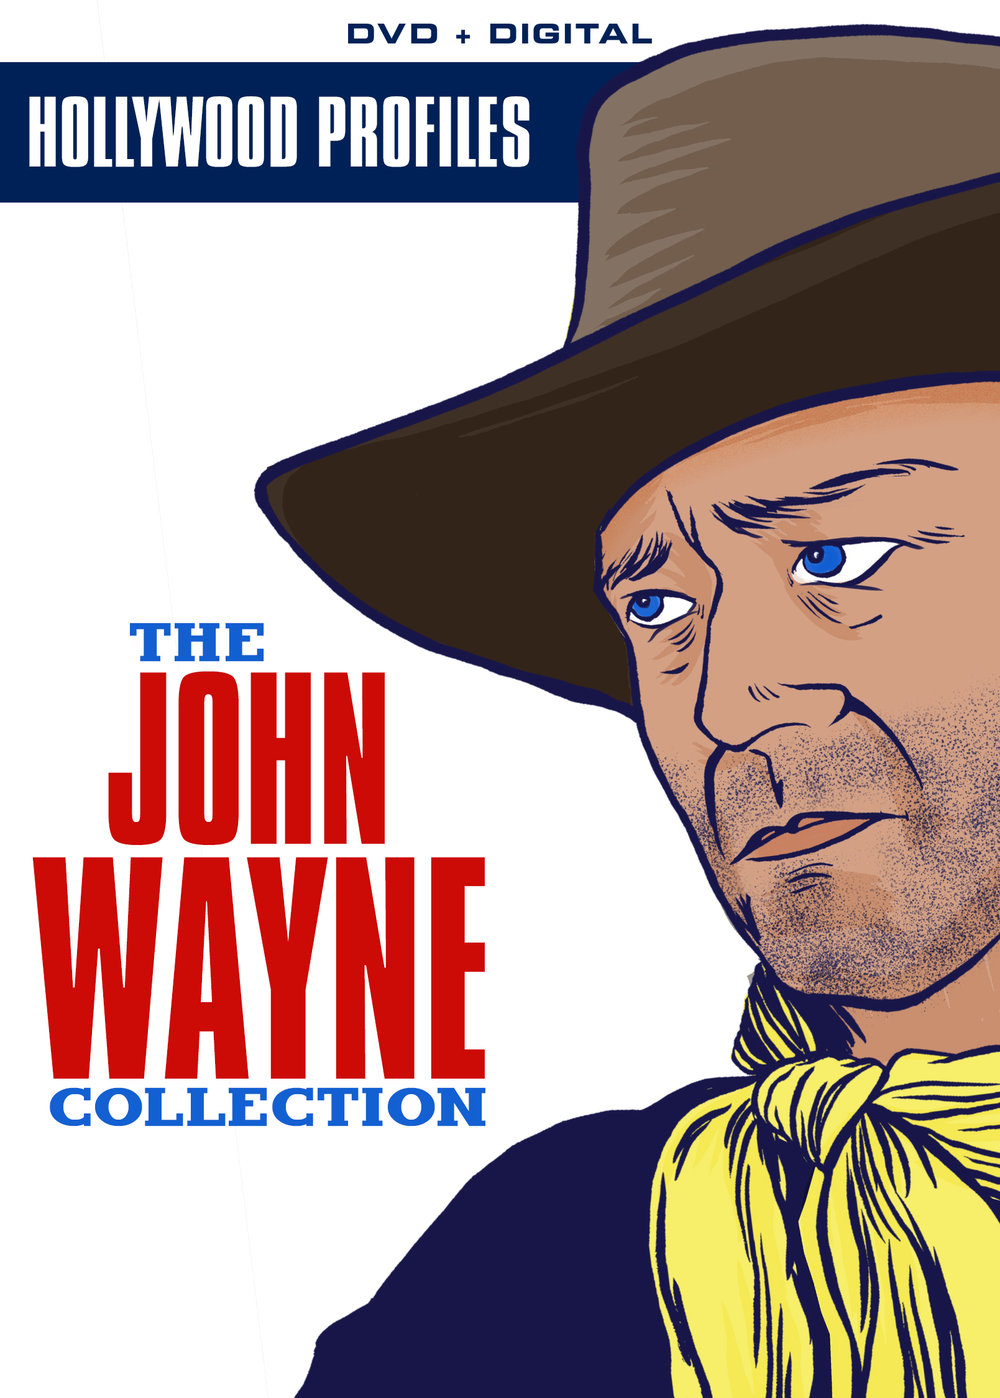 Hollywood Profiles - John Wayne